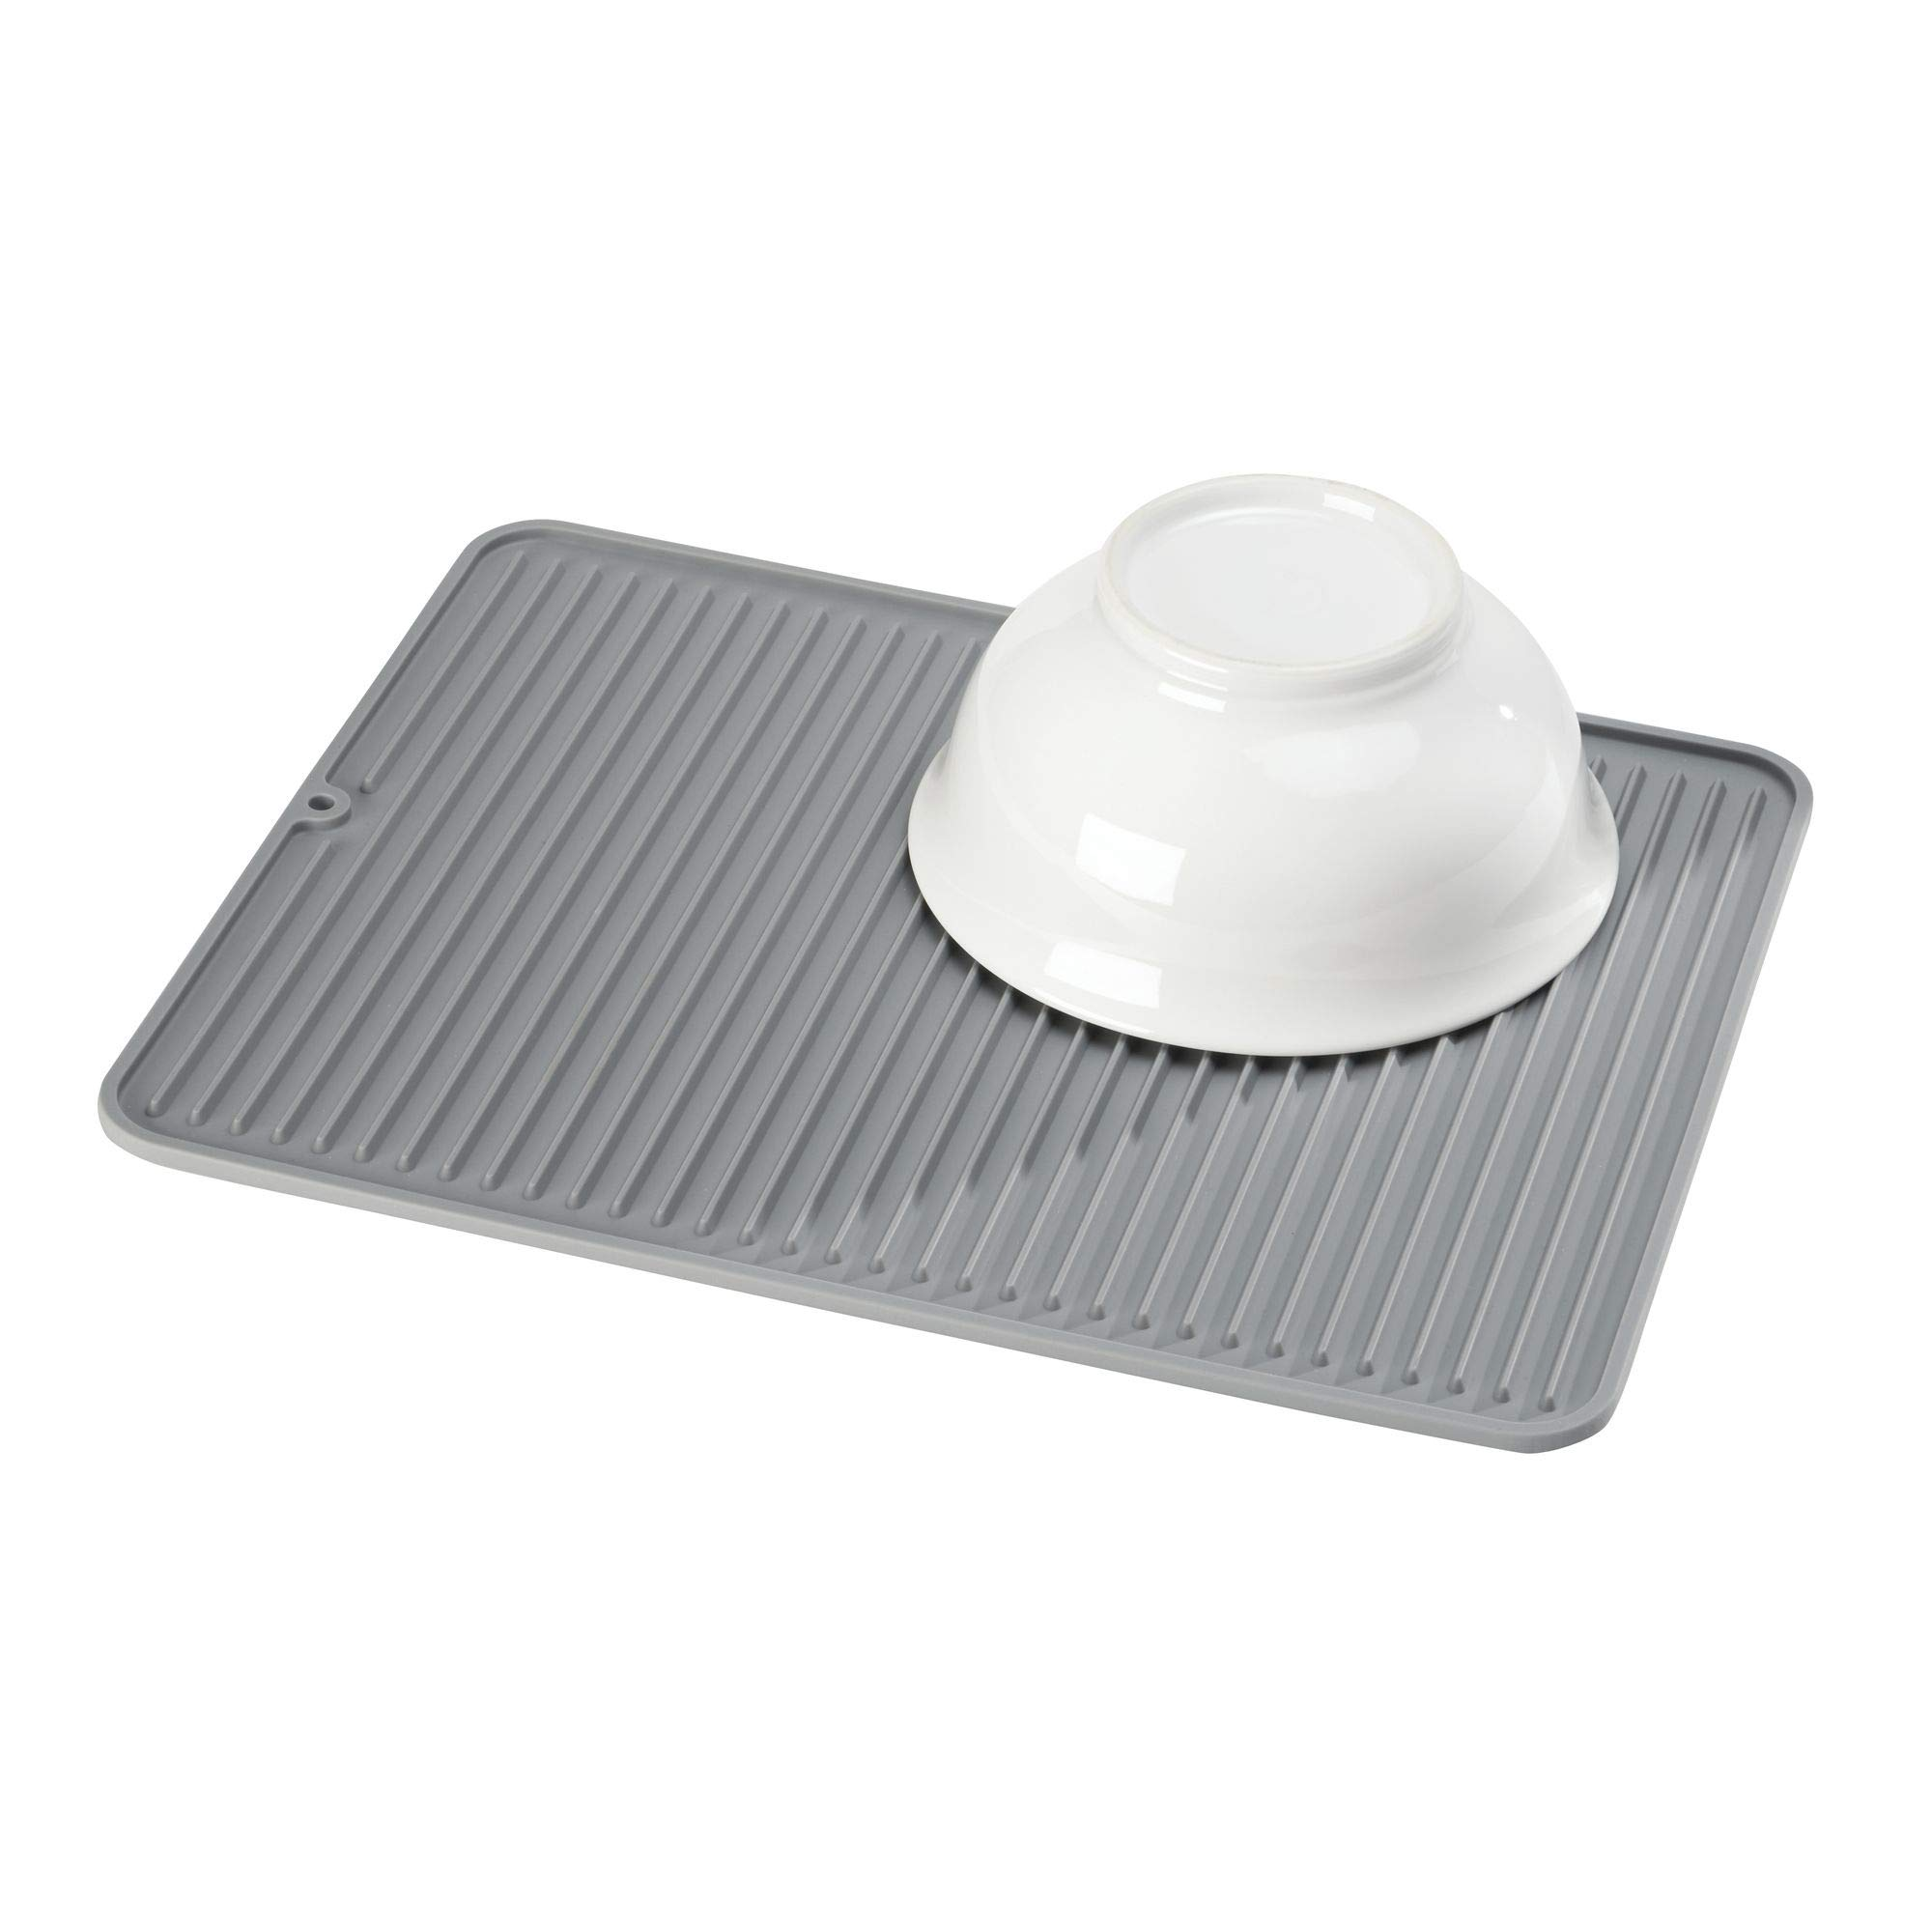 InterDesign, Gray Lineo Kitchen Countertop Silicone Sink Drying Mat-Large